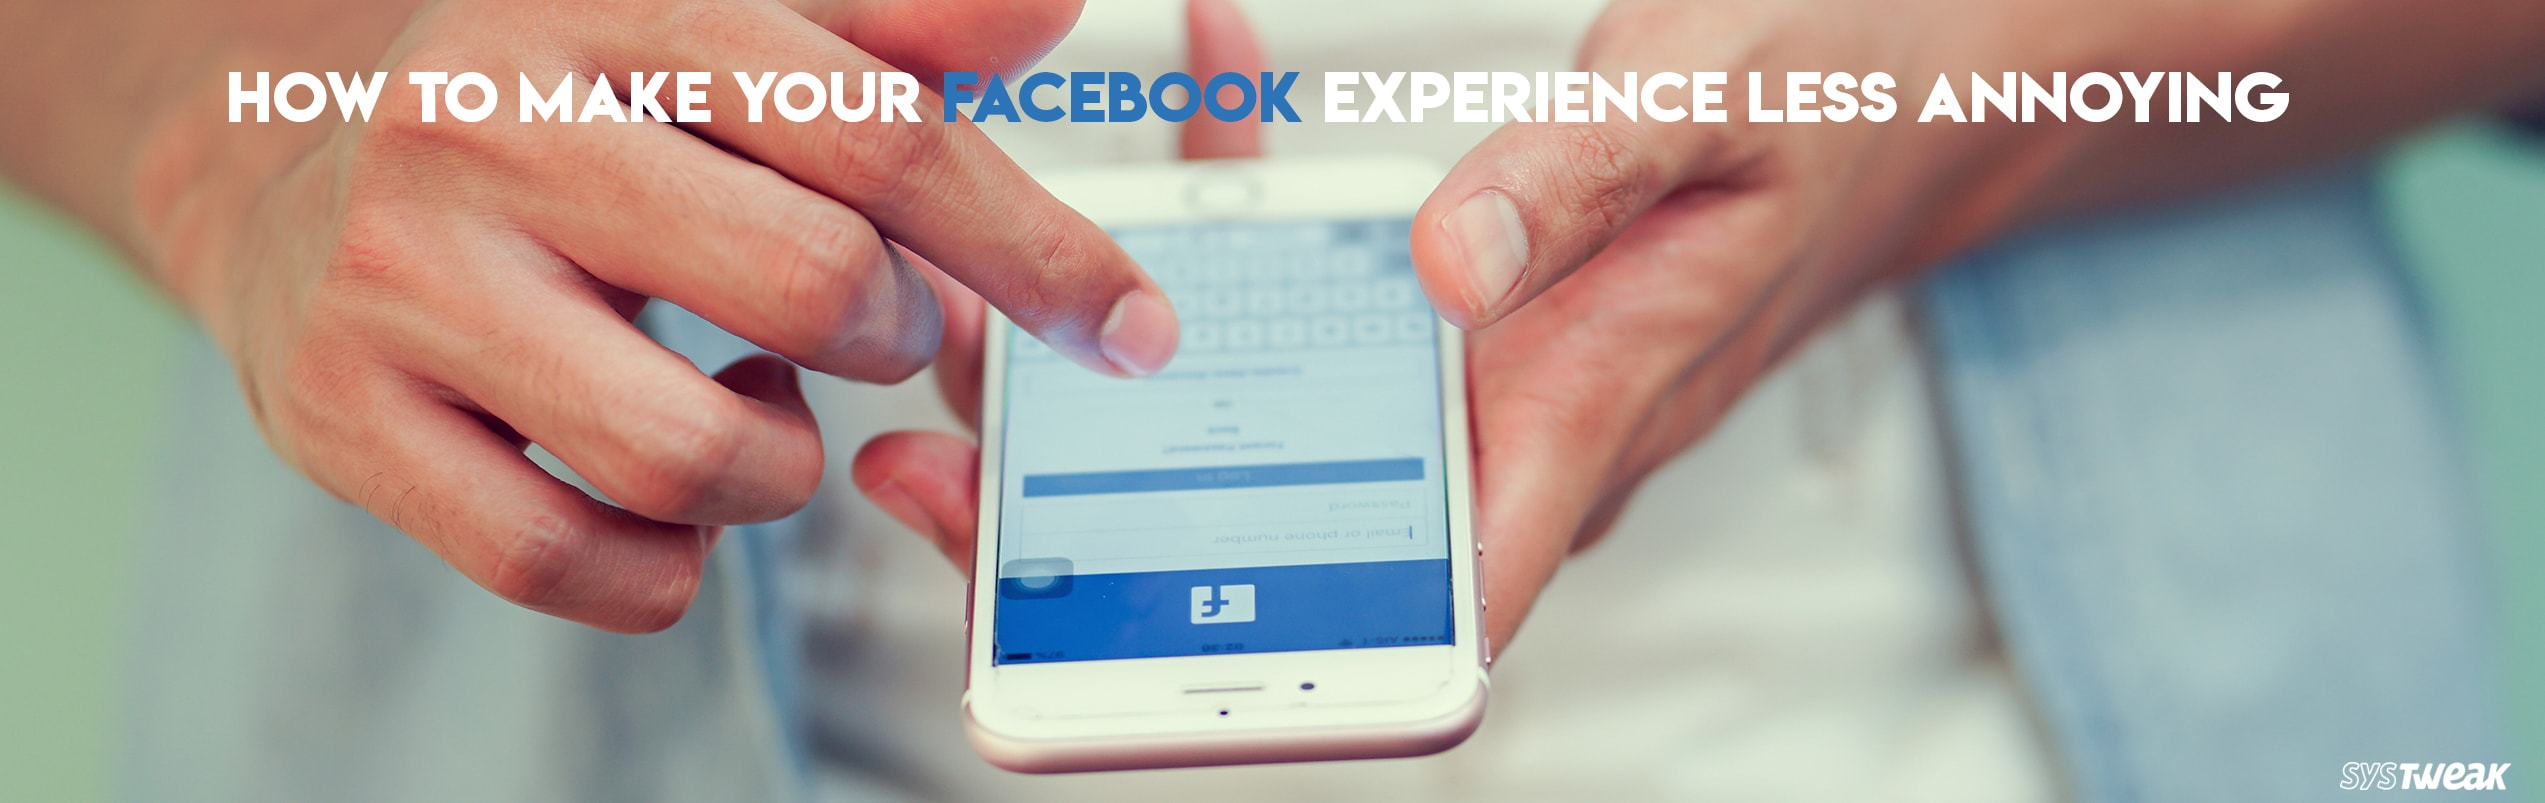 4 Ways To Make Your Facebook Experience More Interesting